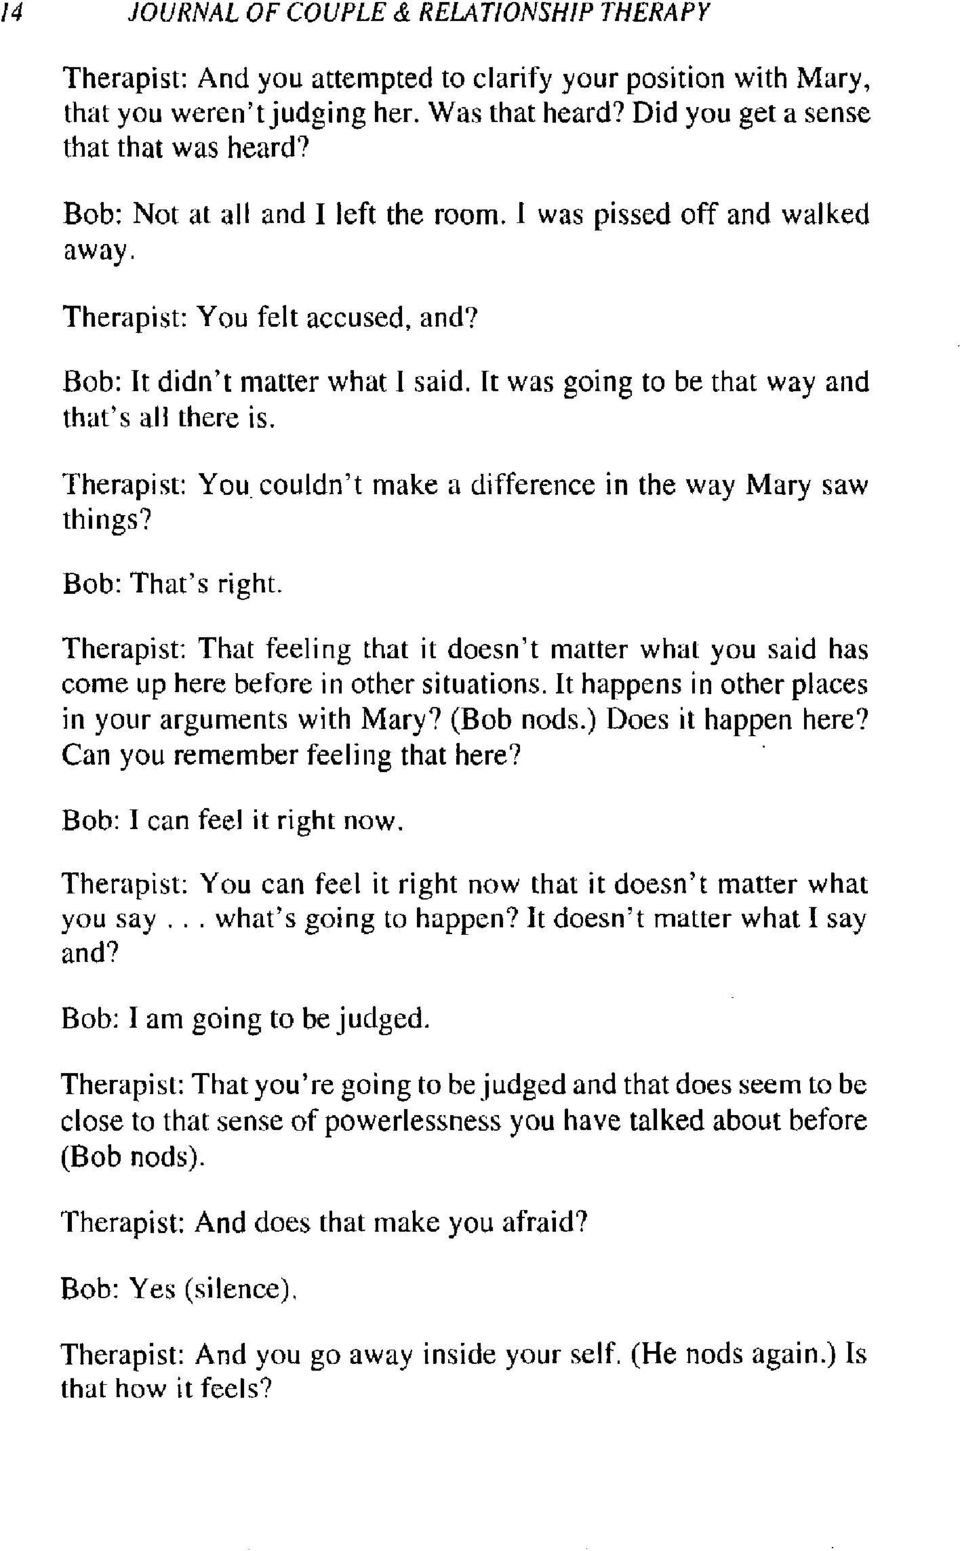 Therapist: You couldn't make a difference in the way Mary saw things? Bob: That's right. Therapist: That feeling that it doesn't matter what you said has come up here before in other situations.